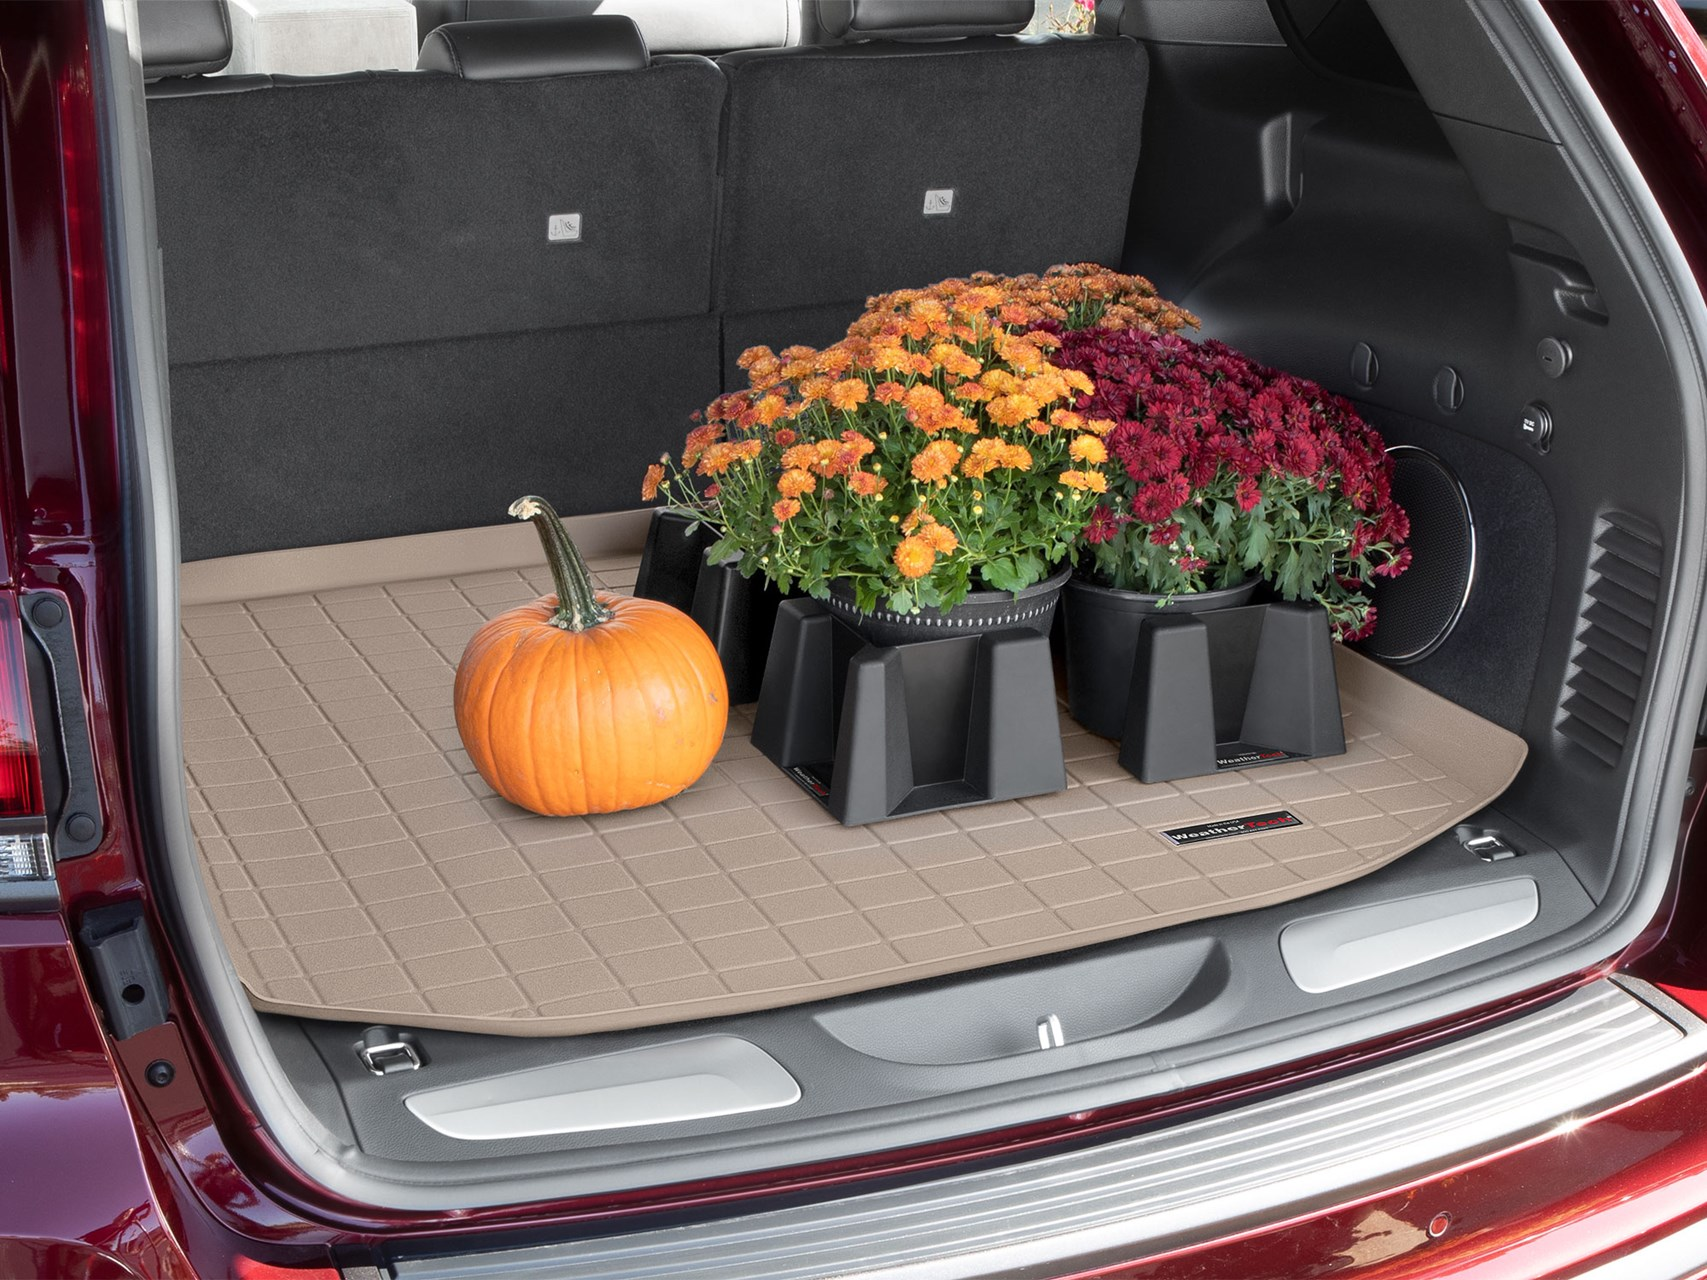 Tan WeatherTech Cargo Liner with pPumpkins, mums and gourds all organized with CargoTech. Cargo Liner protects your car's cargo or trunk area from spills, dirt and other messes.